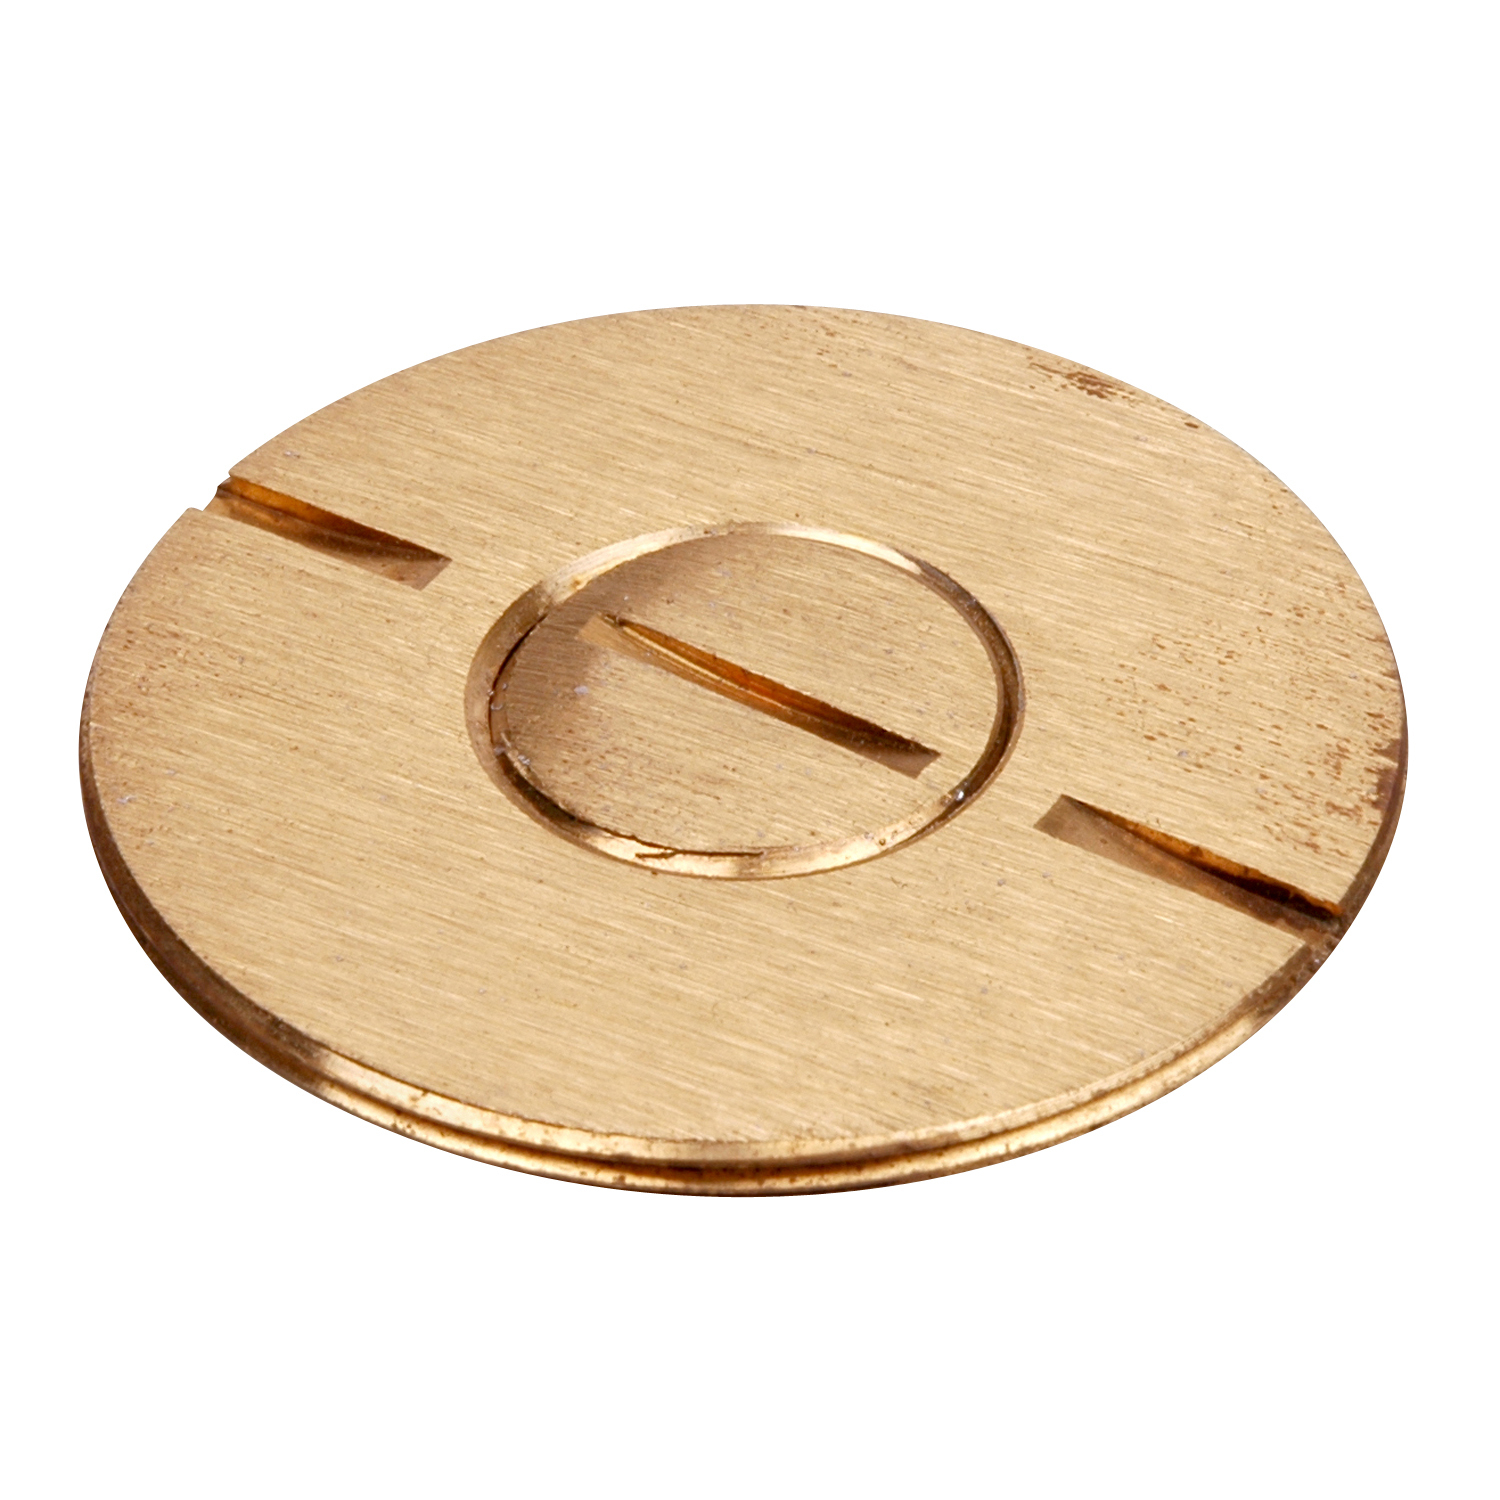 Steel City® 693-SC Flush Service Floor Plate Plug Insert, For Use With Floor Plate Cover, Brass